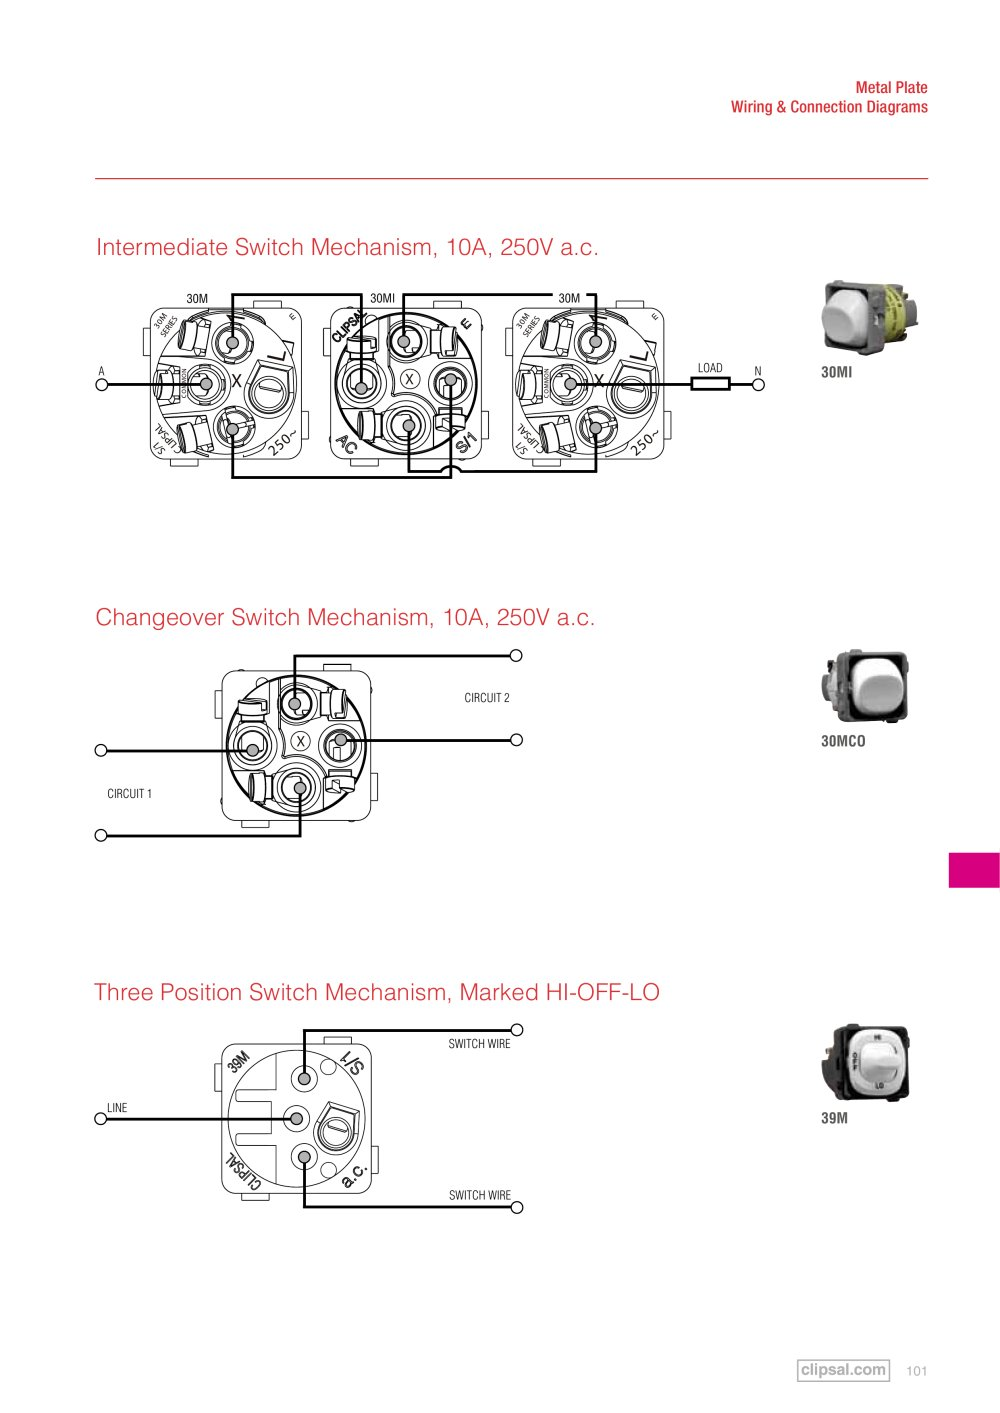 hpm intermediate switch wiring diagram mitsubishi pajero diagrams dimmer : 32 images - | bayanpartner.co